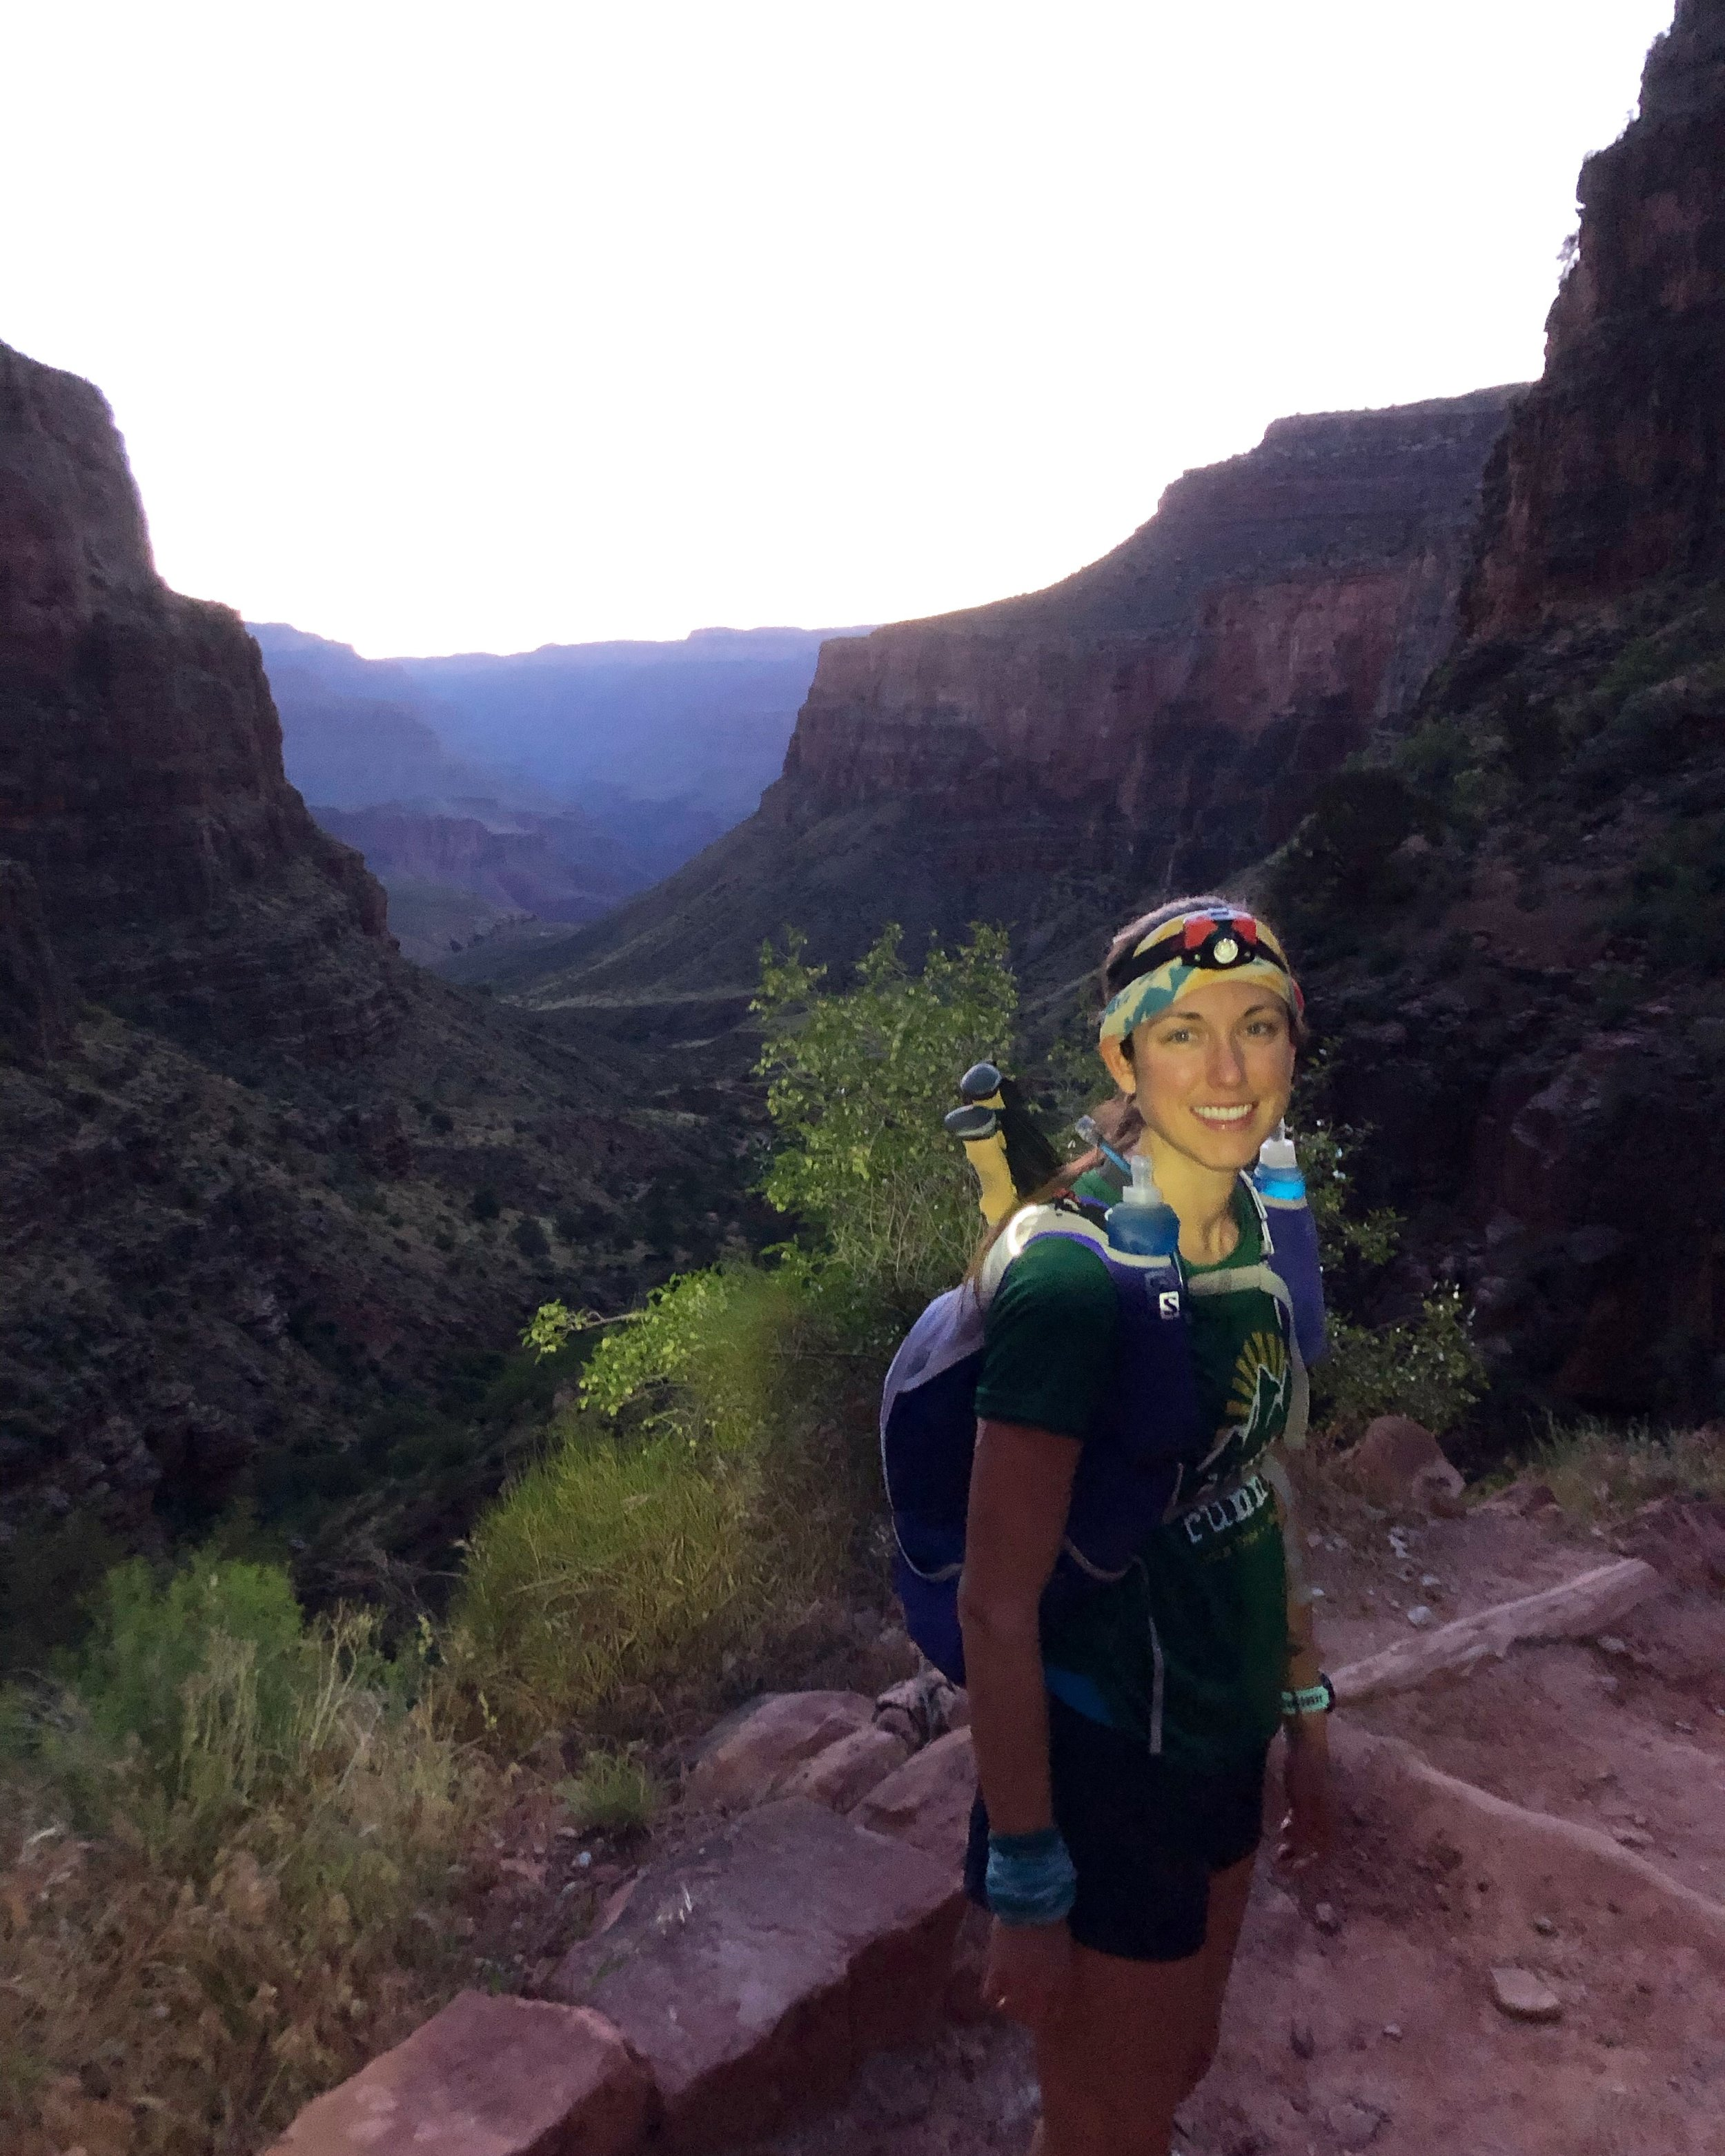 Before the sun rose on Bright Angel Trail as we descend into the canyon.